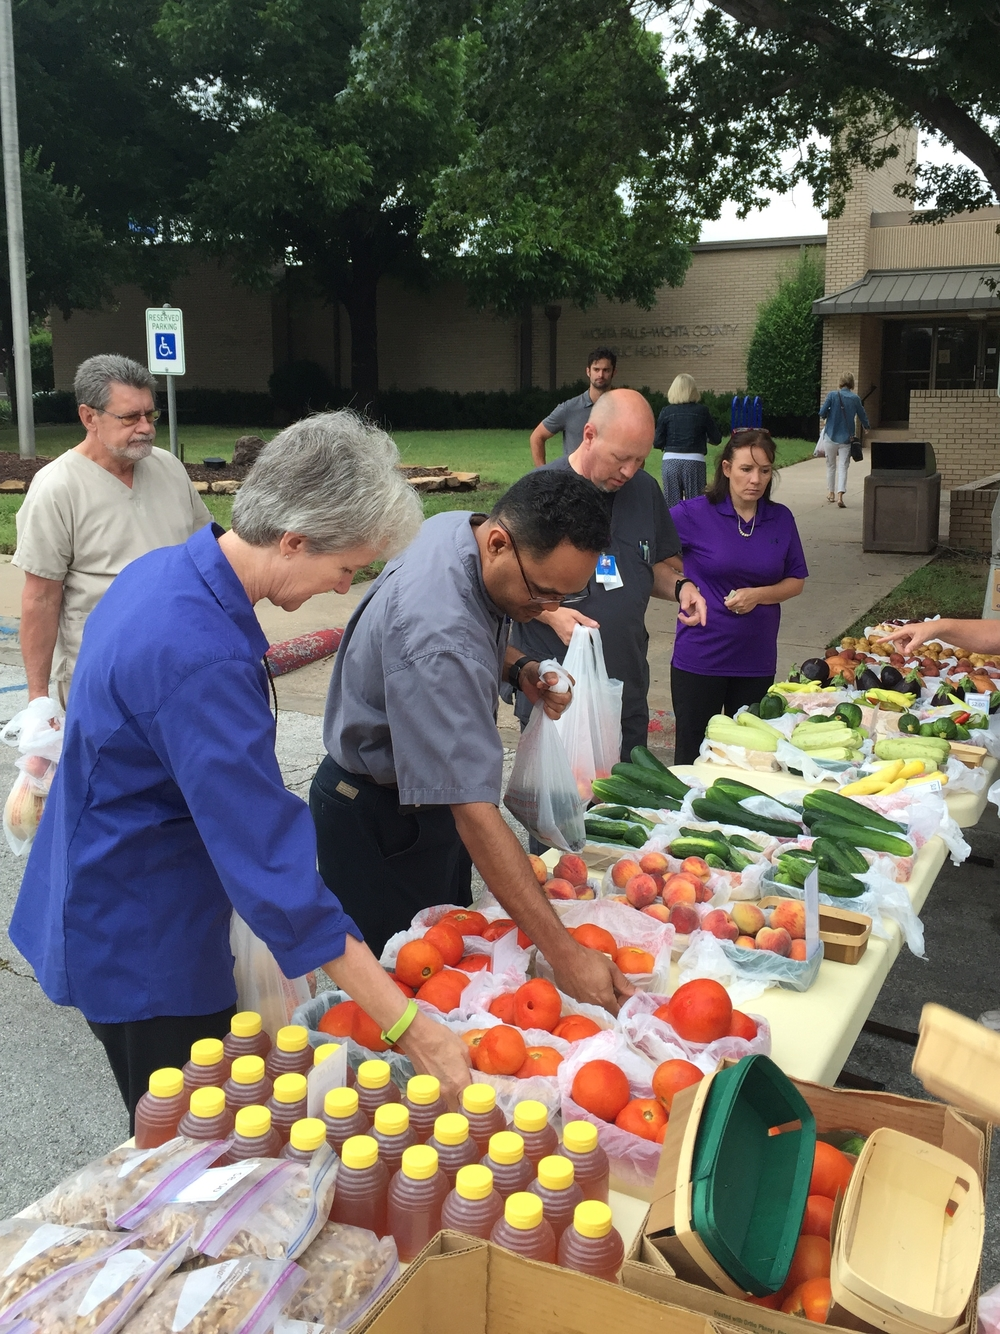 By adding an additional farmers' market at the local health department, Wichita Falls-Wichita County Public Health District increased WIC voucher redemption rates by 25% in 2015.  They distributed 700 booklets worth $30 and facilitated an additional $16,800 worth of fruits and vegetables in benefits for WIC clients over 1-year-old.  Location: Wichita Falls, Texas